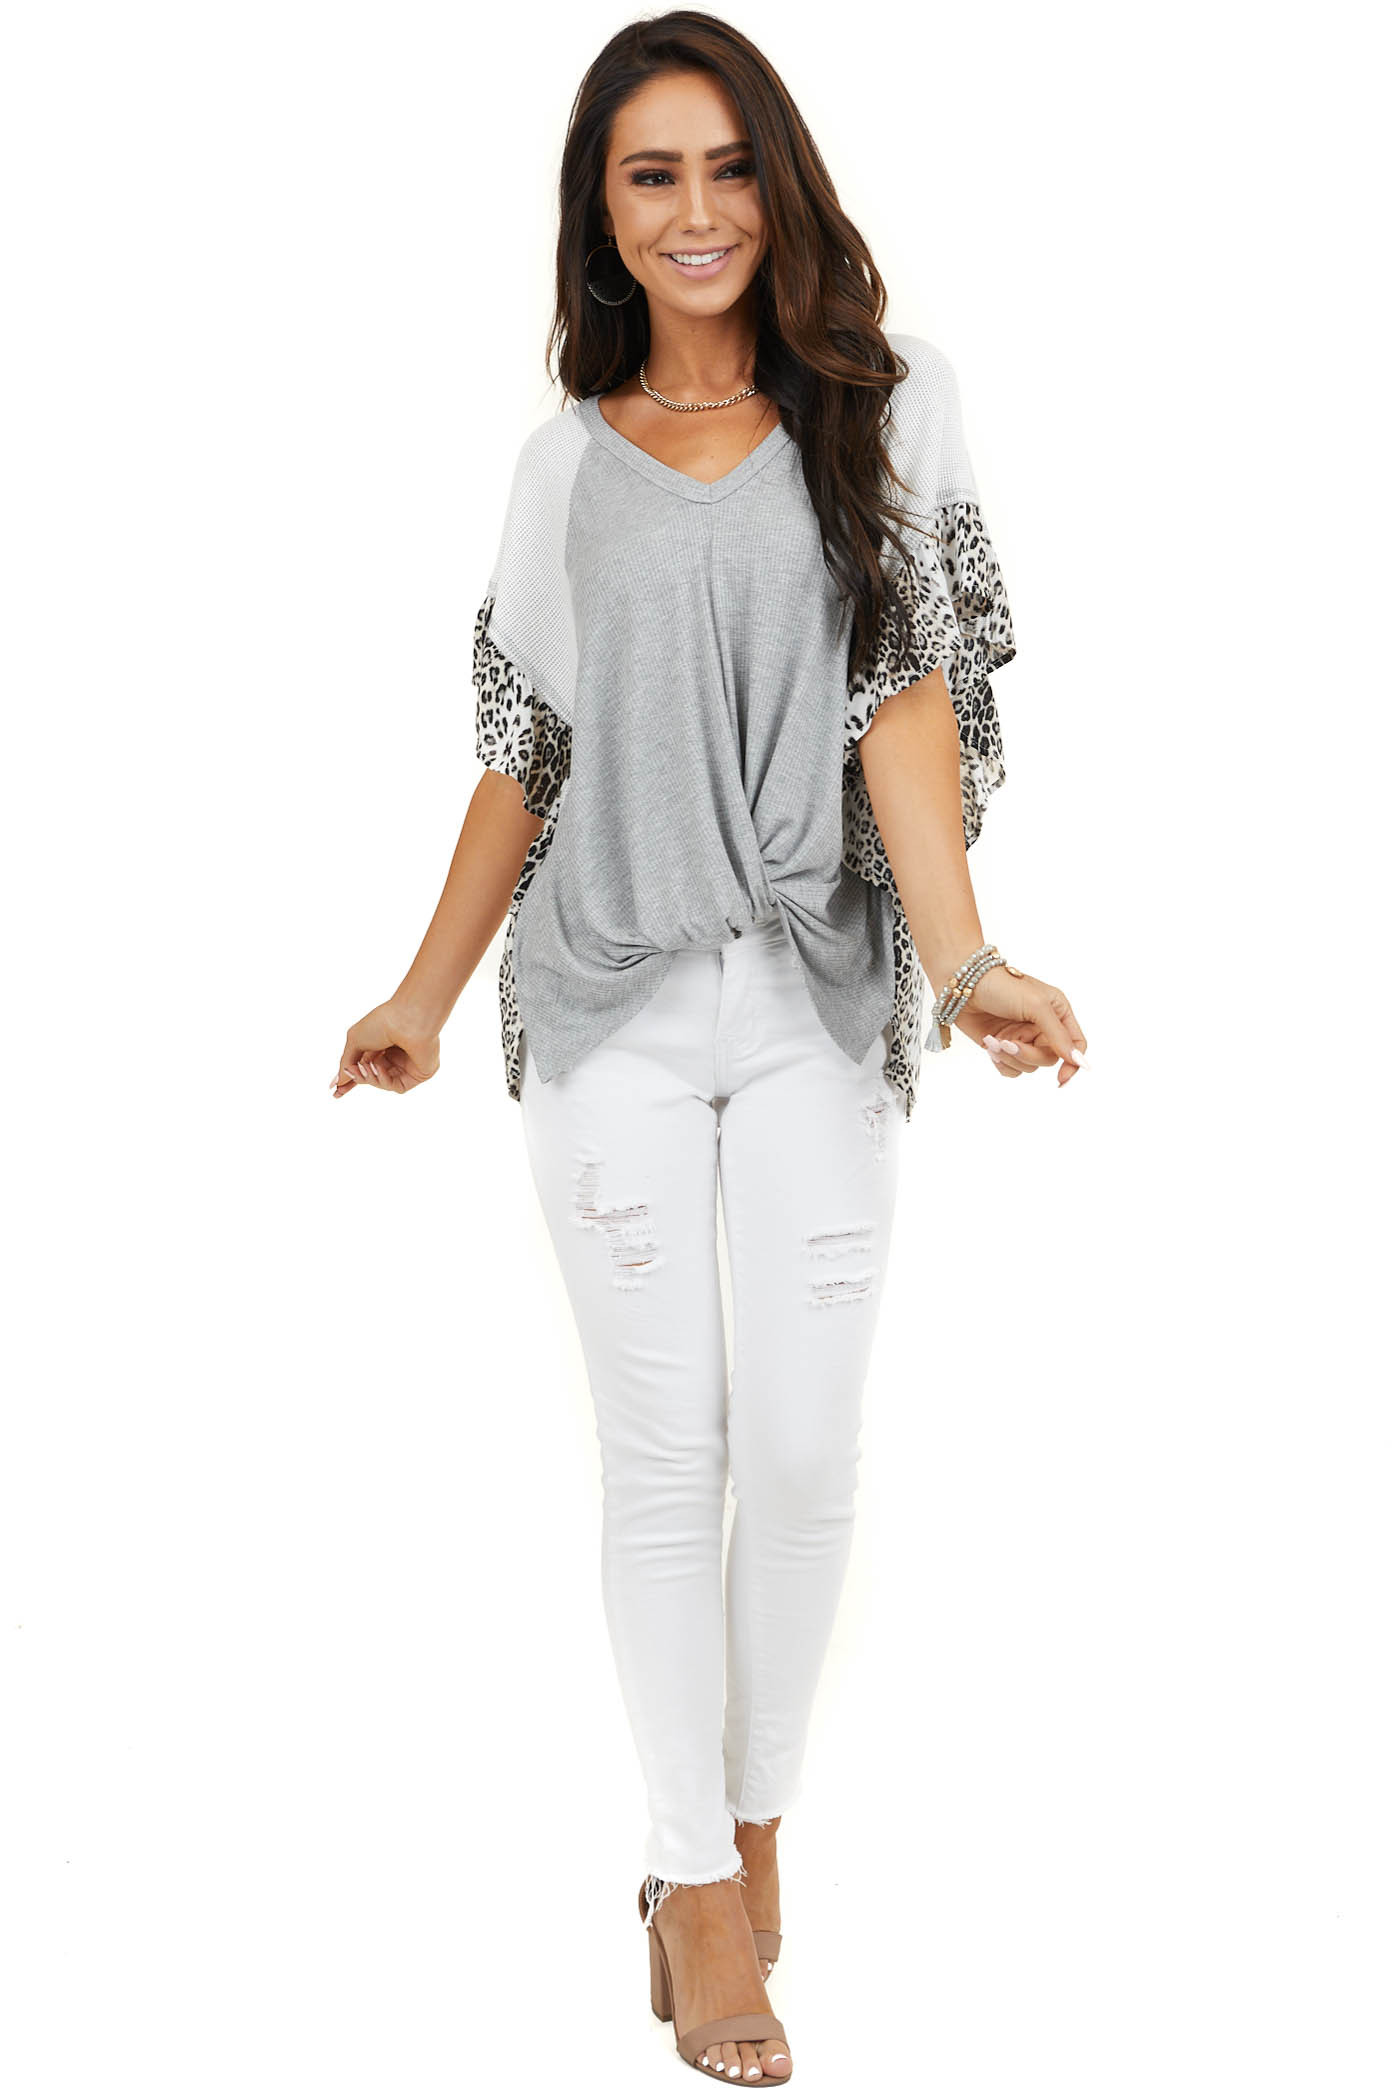 Heather Grey Top with Waffle Knit and Leopard Print Contrast